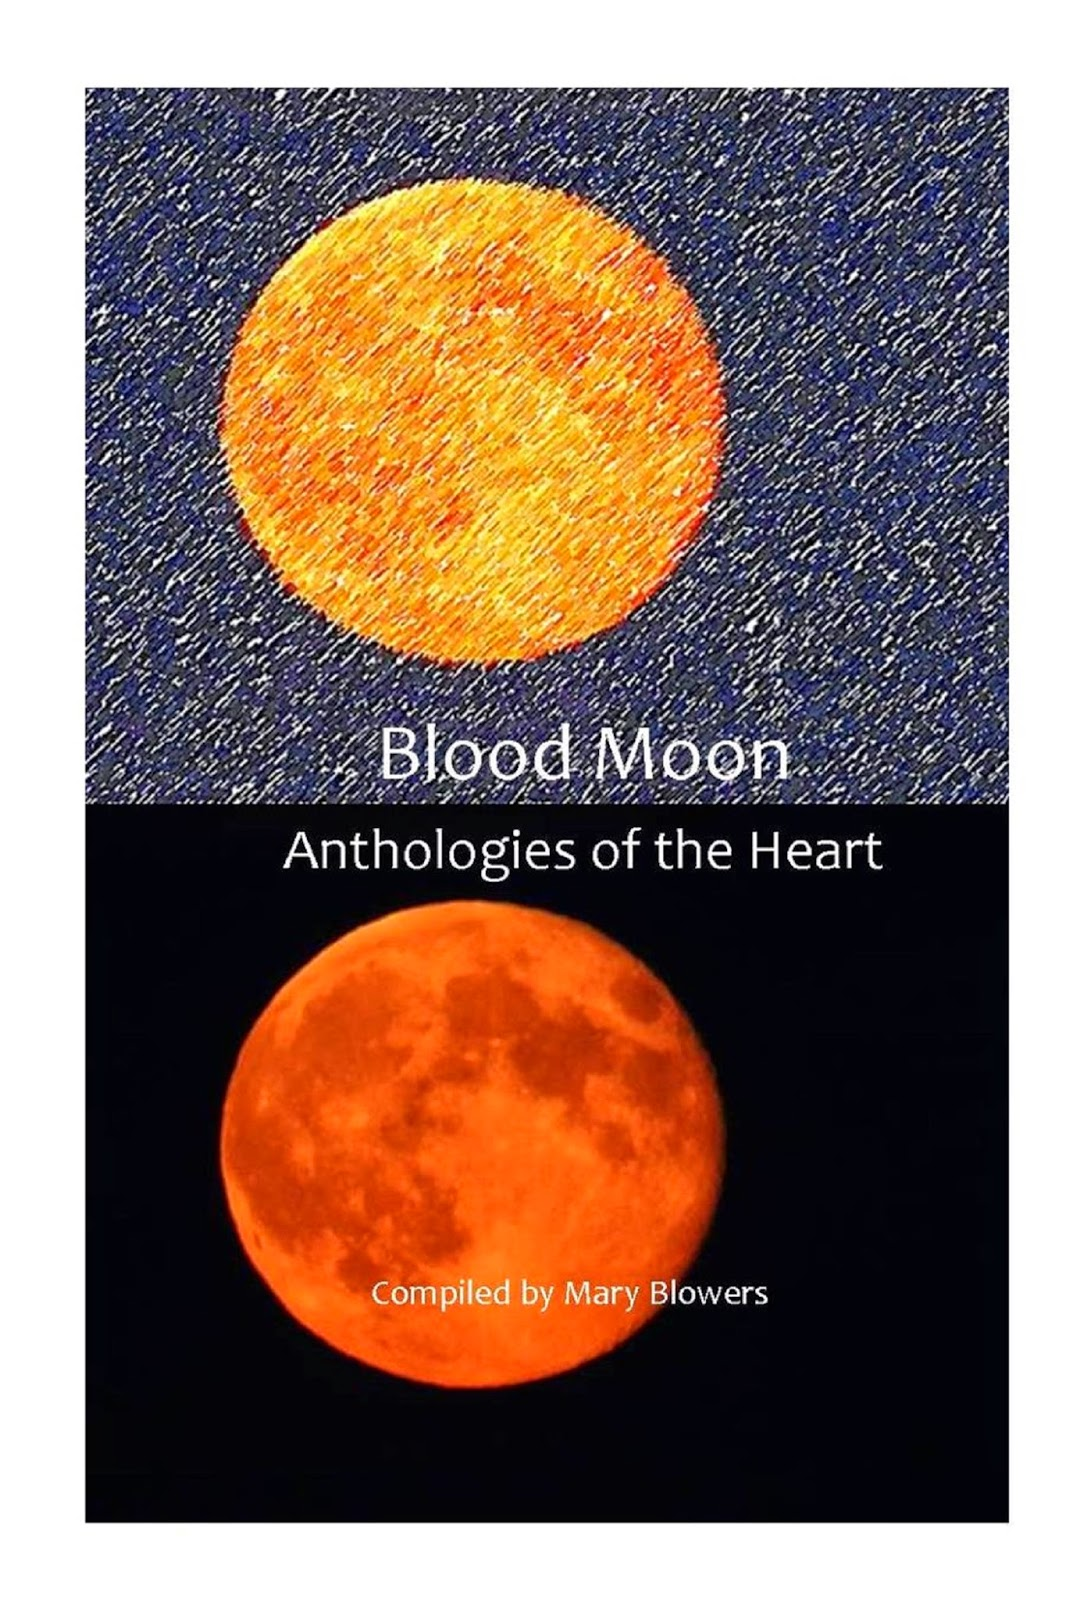 Blood Moon, Mary Blowers, anthology